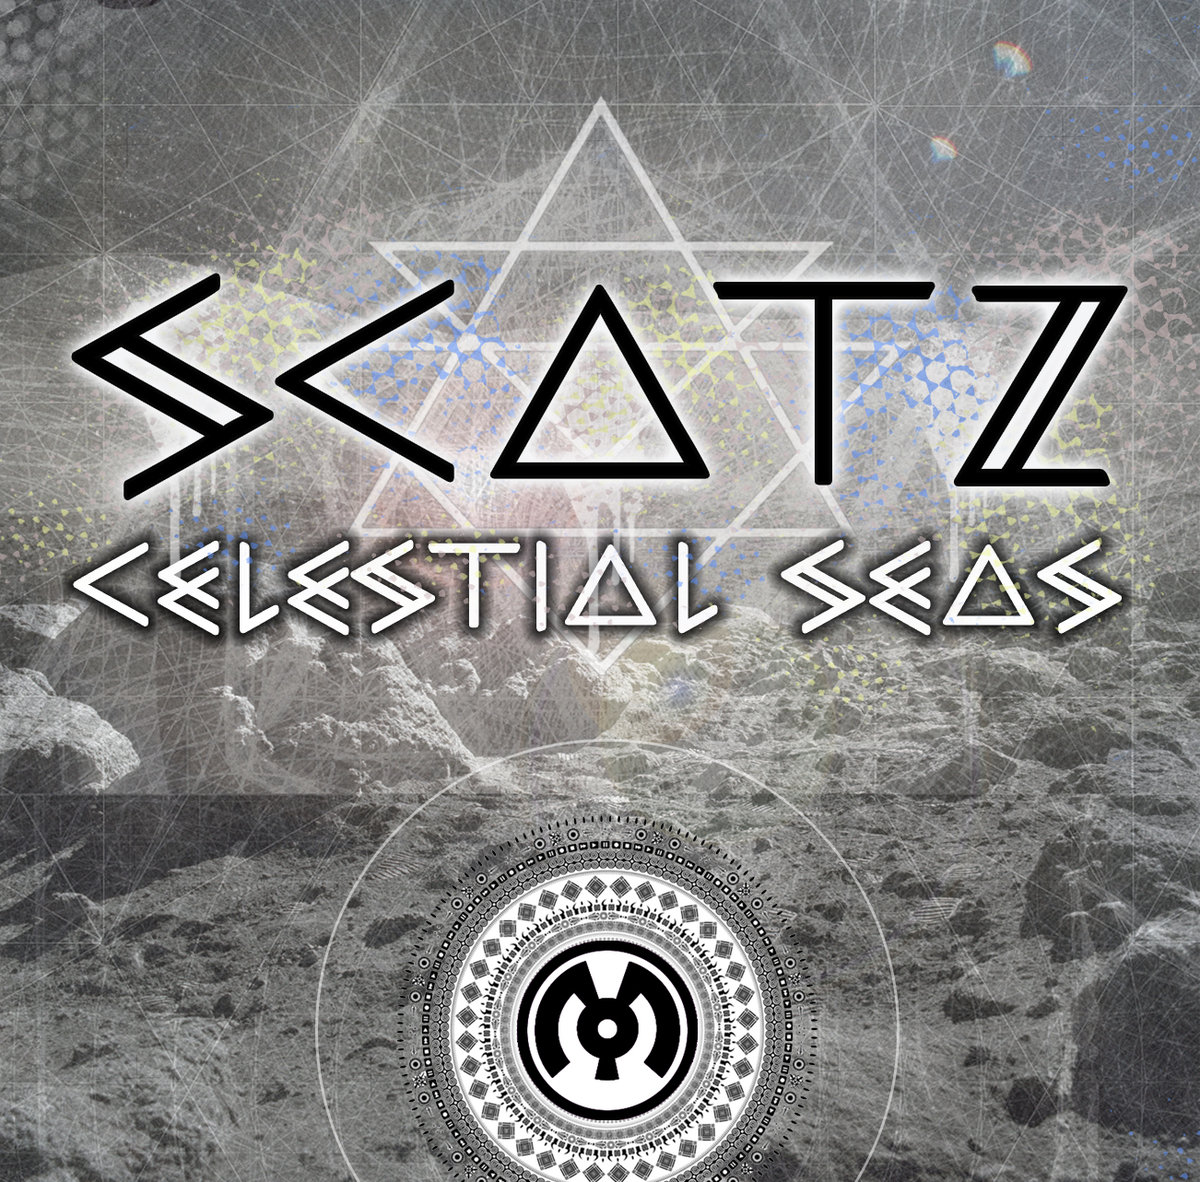 Scatz - Trade My Things For Wings @ 'Celestial Seas' album (electronic, dubstep)